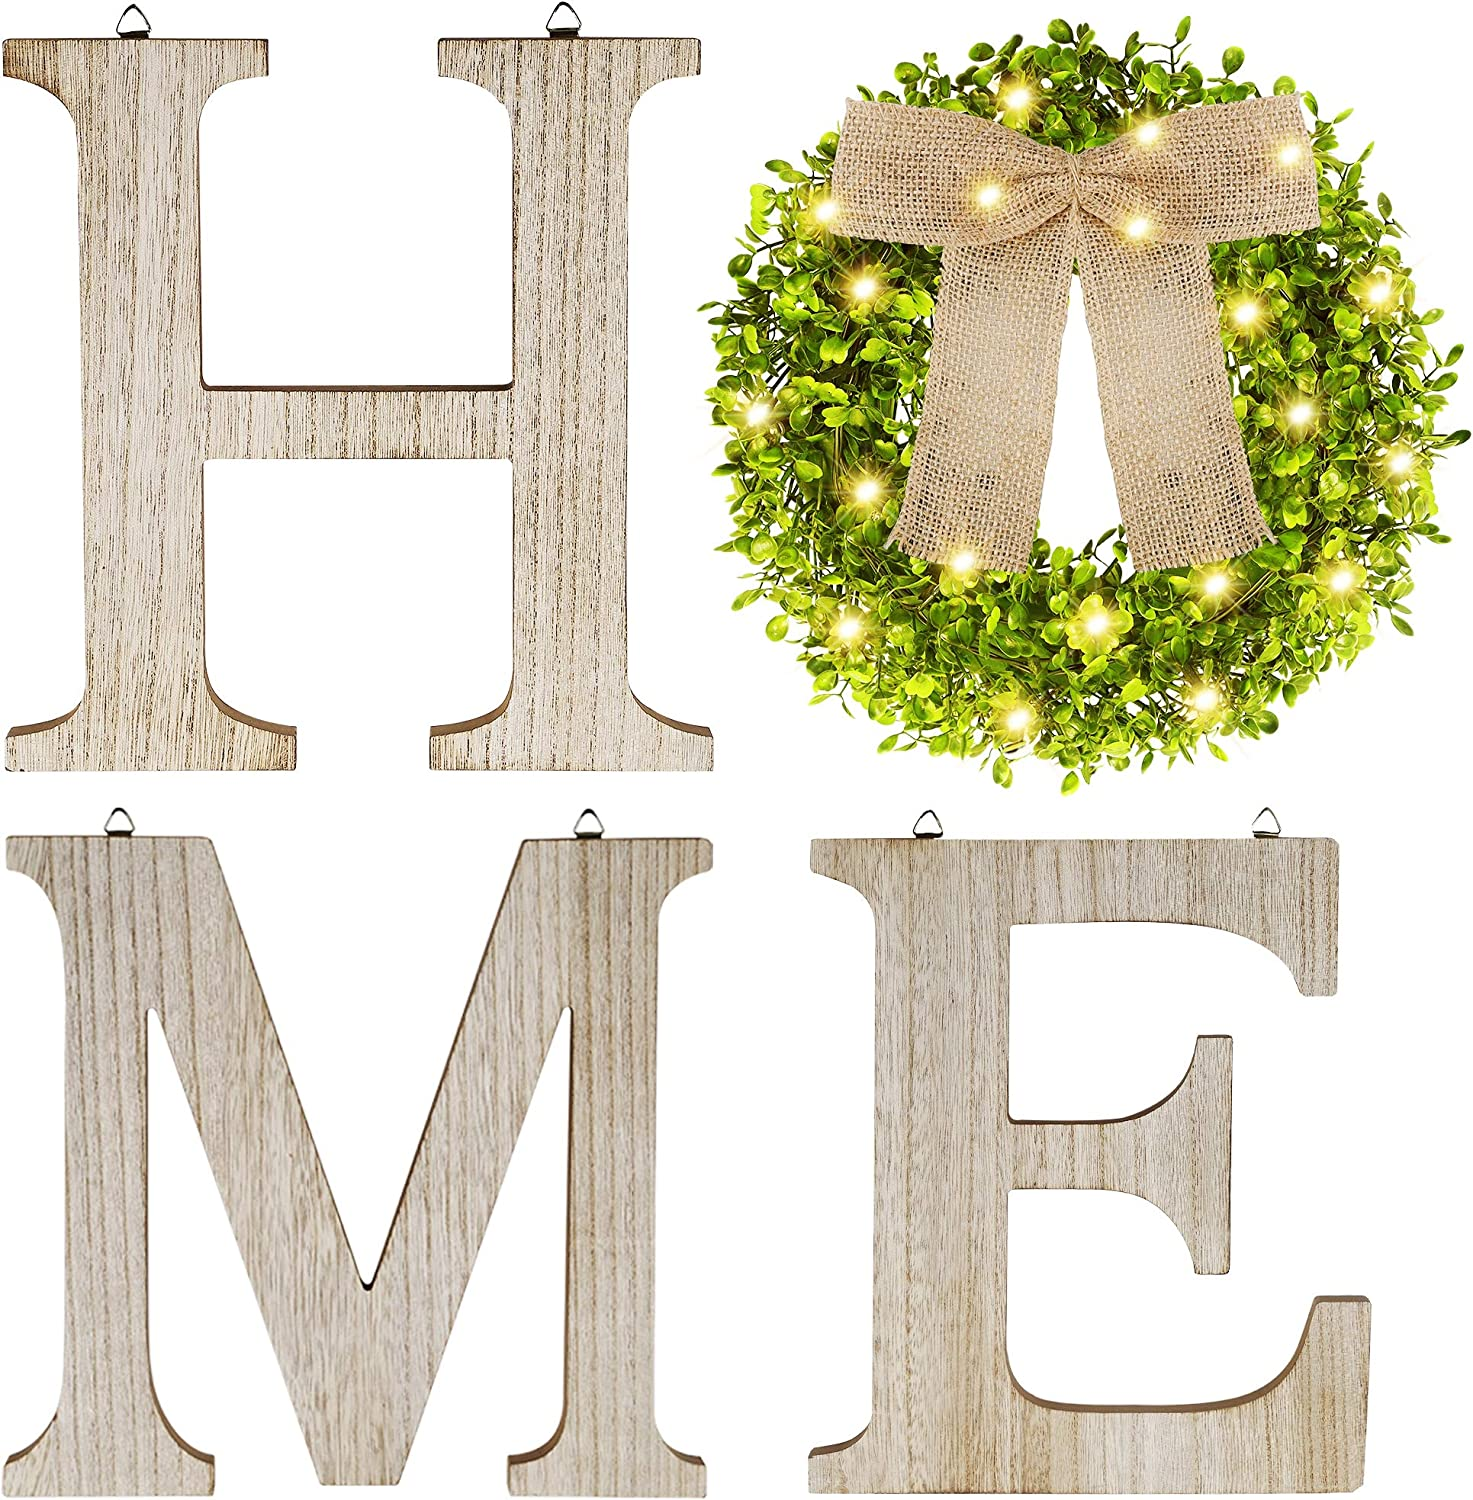 SAND MINE Wooden Home Signs, Farmhouse Home Decor Wall, Rustic Home Letters Decor with Lighted Artificial Eucalyptus Wreath, Wall Decorative Hanging Sign for Bedroom Living Room Enterway, Wood